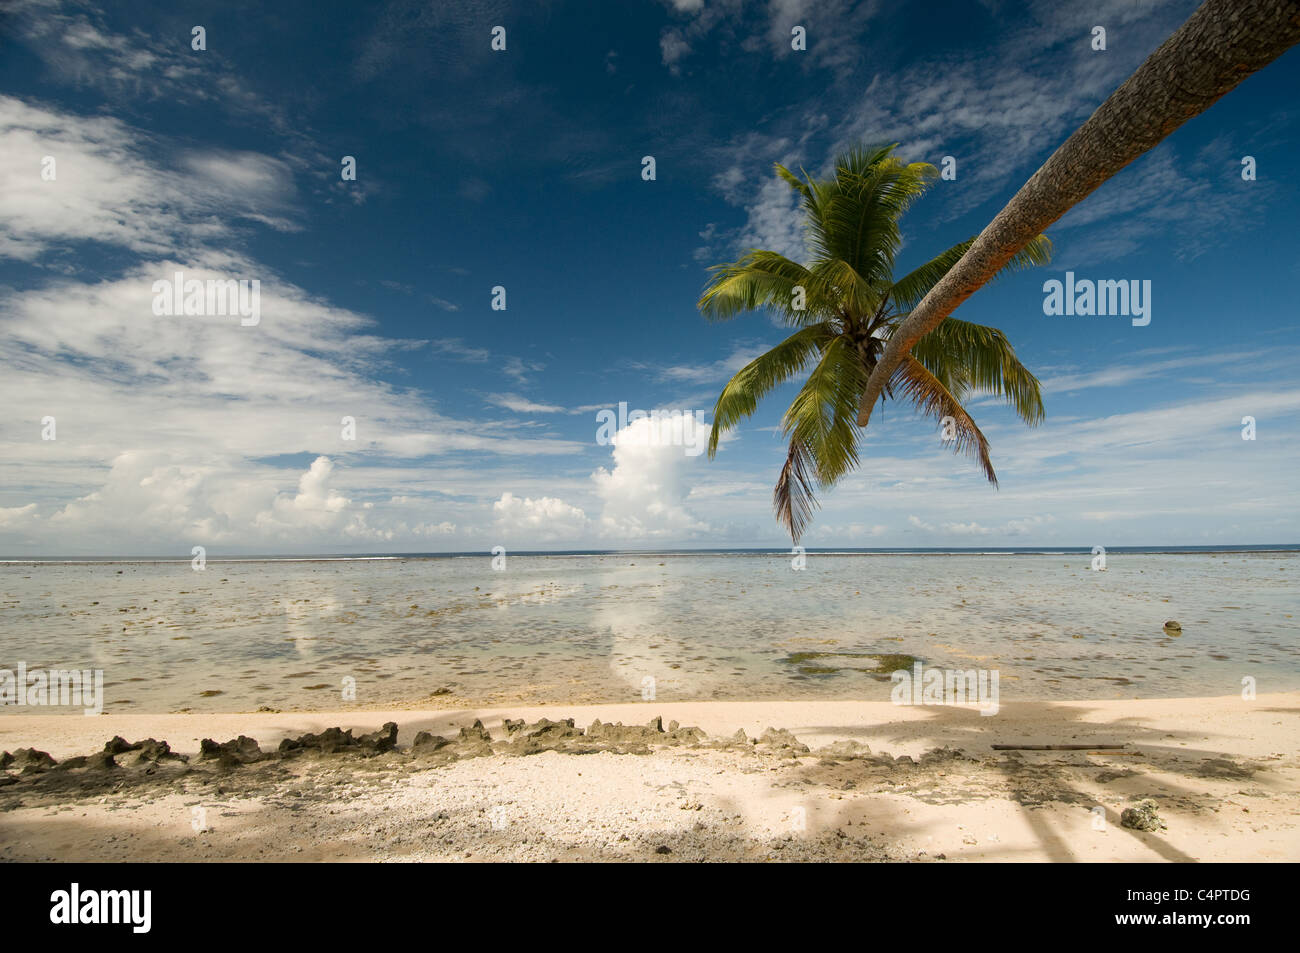 Tropical palm tree leans over deserted beach on Viti Levu island in Fiji South Pacific - Stock Image